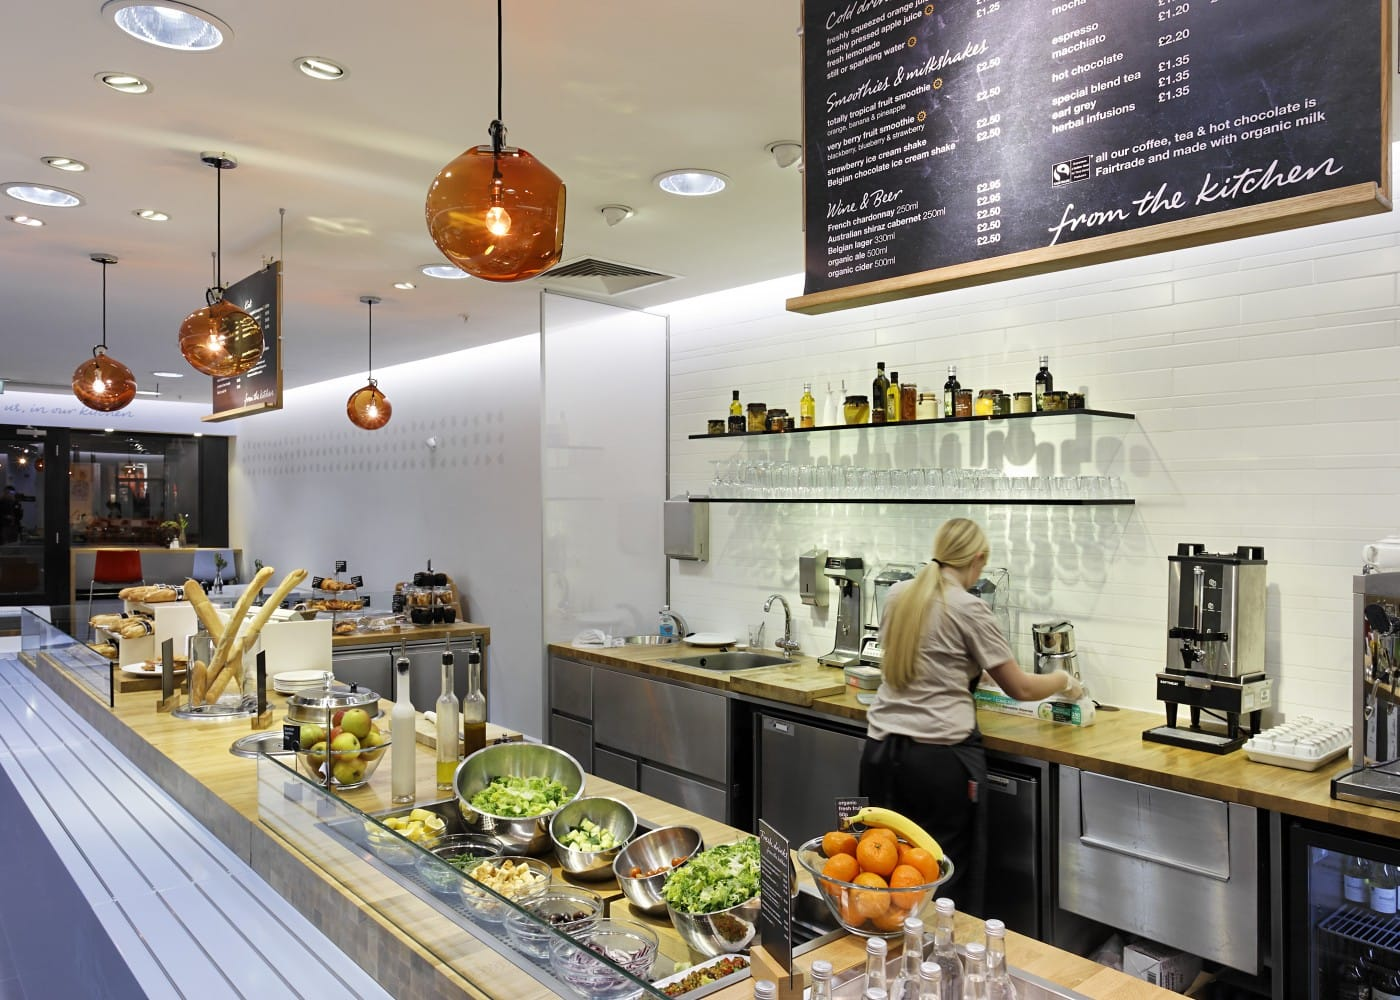 hospitality lighting design: M&S cafe kitchen area